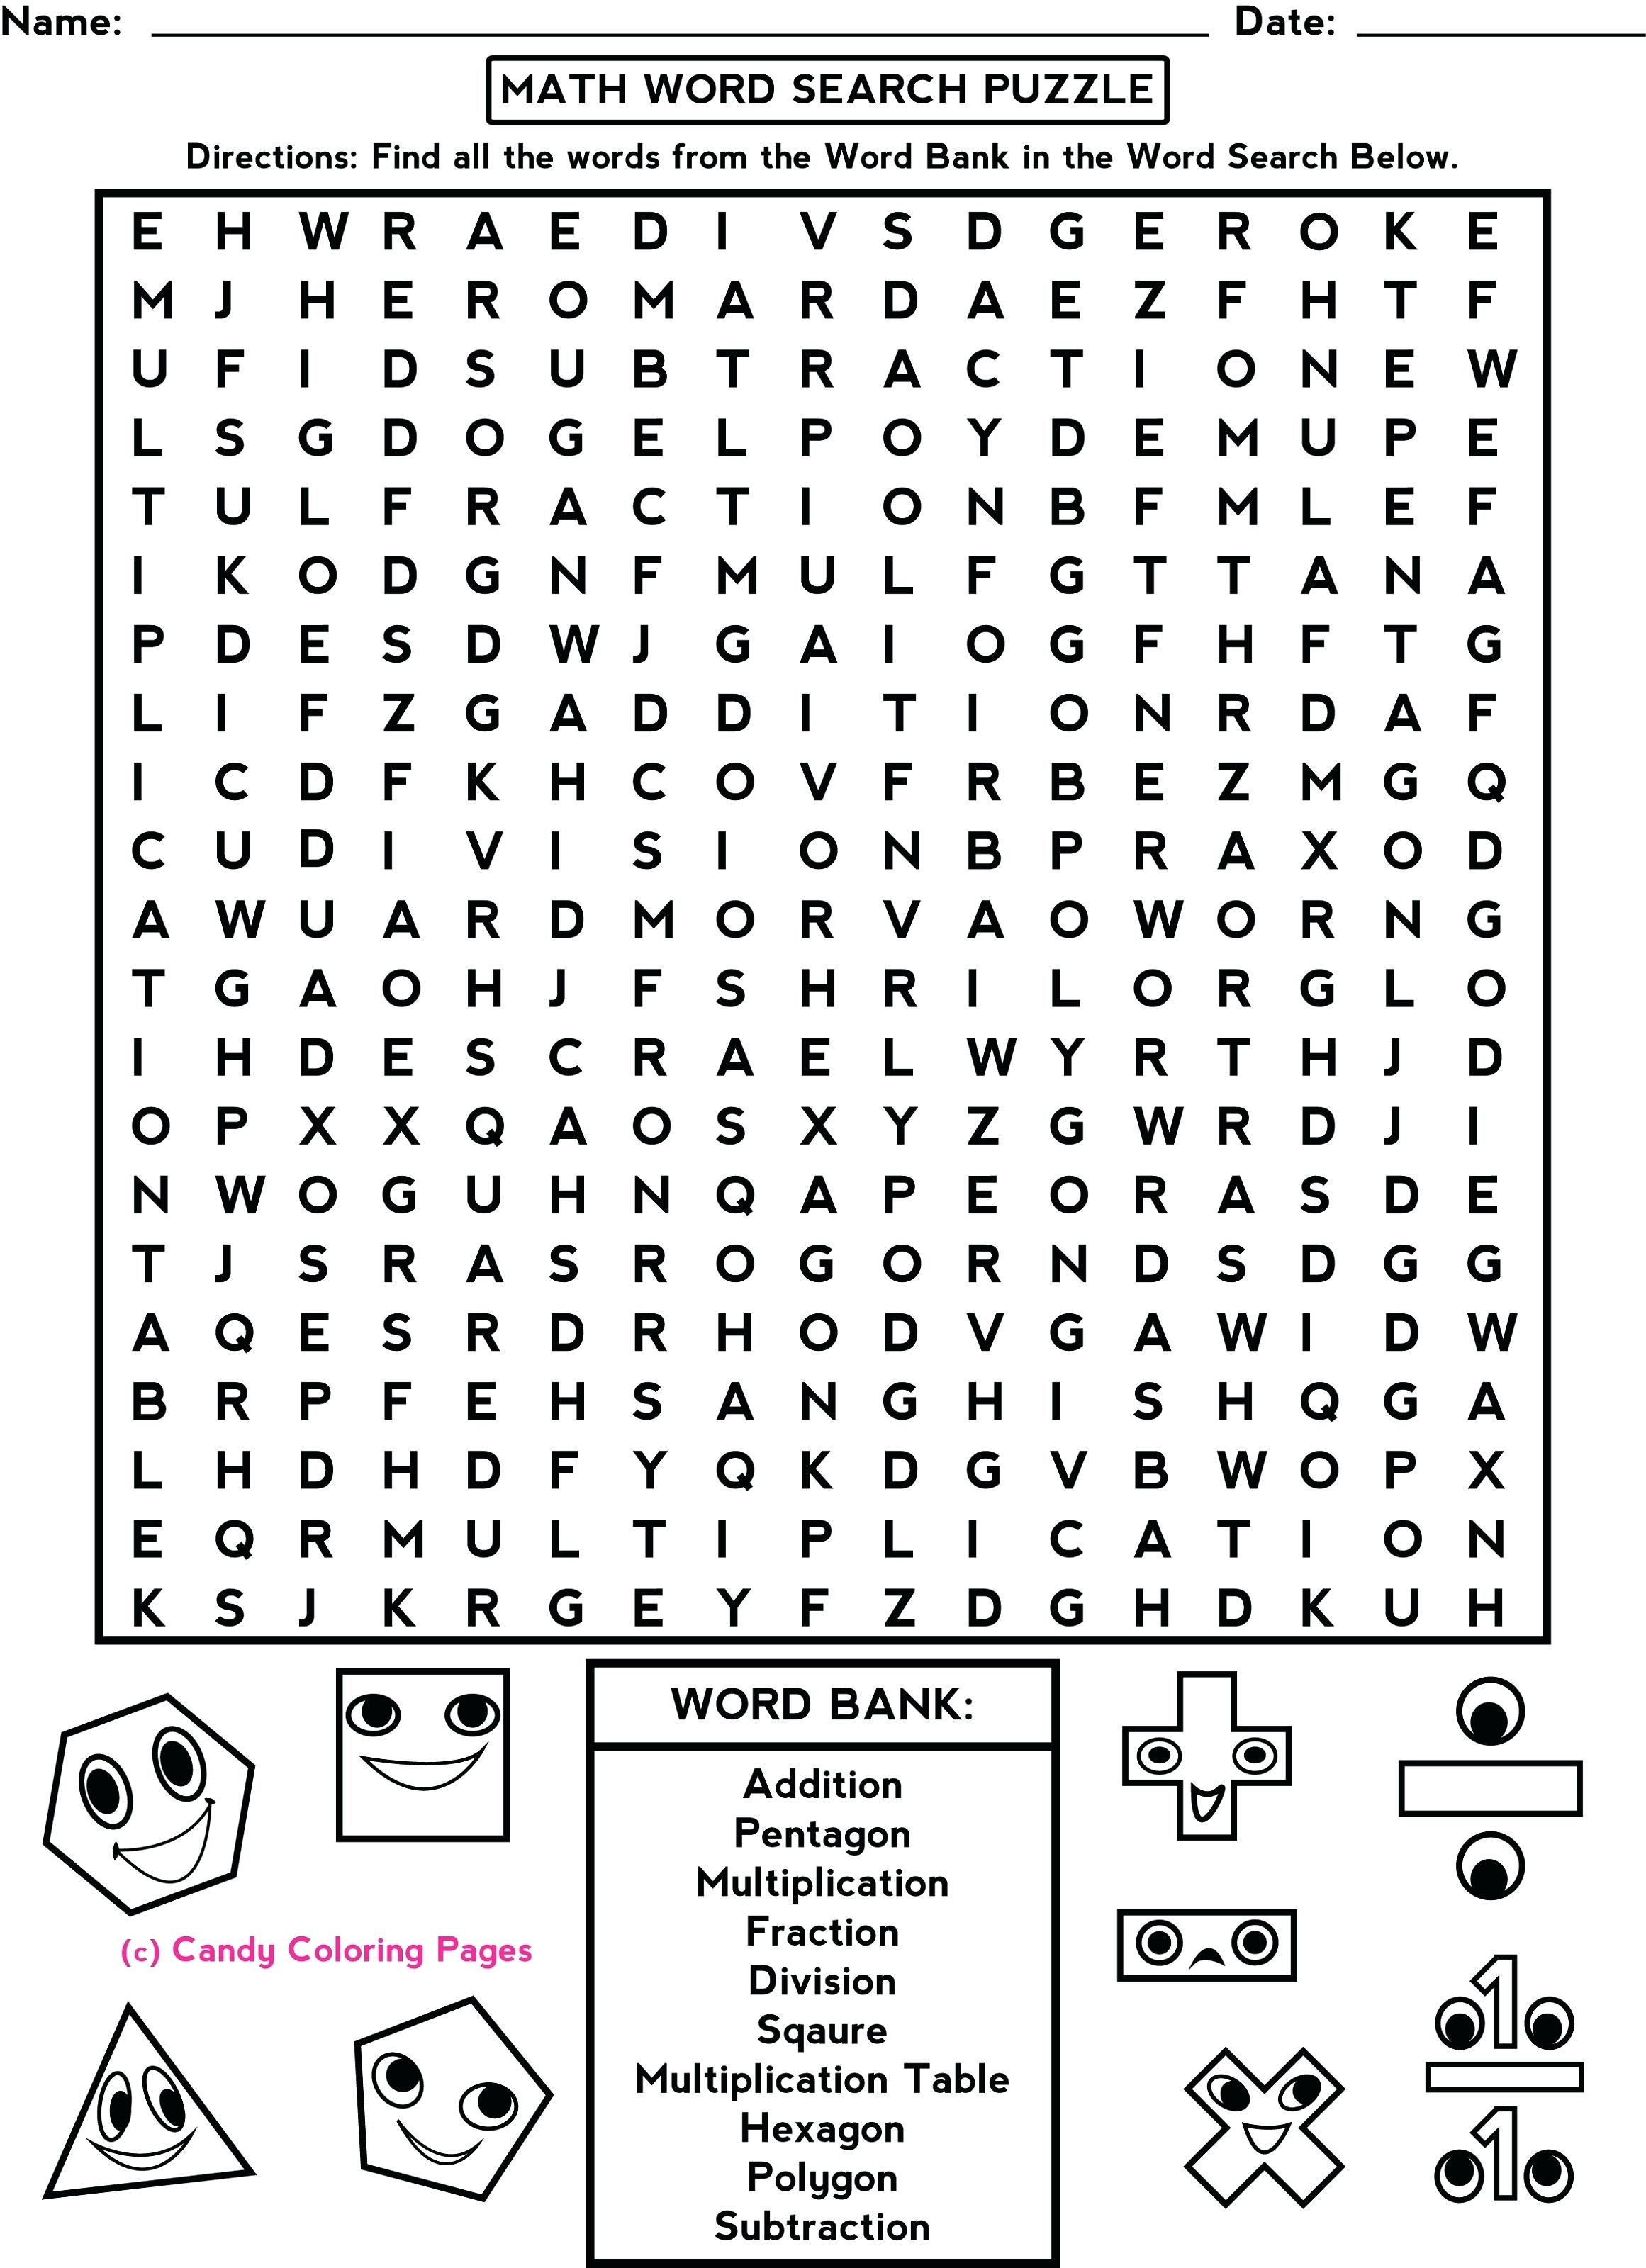 4Th Grade Math Puzzles Fun Worksheets For Middle School Sear On - Printable Math Puzzle Worksheets